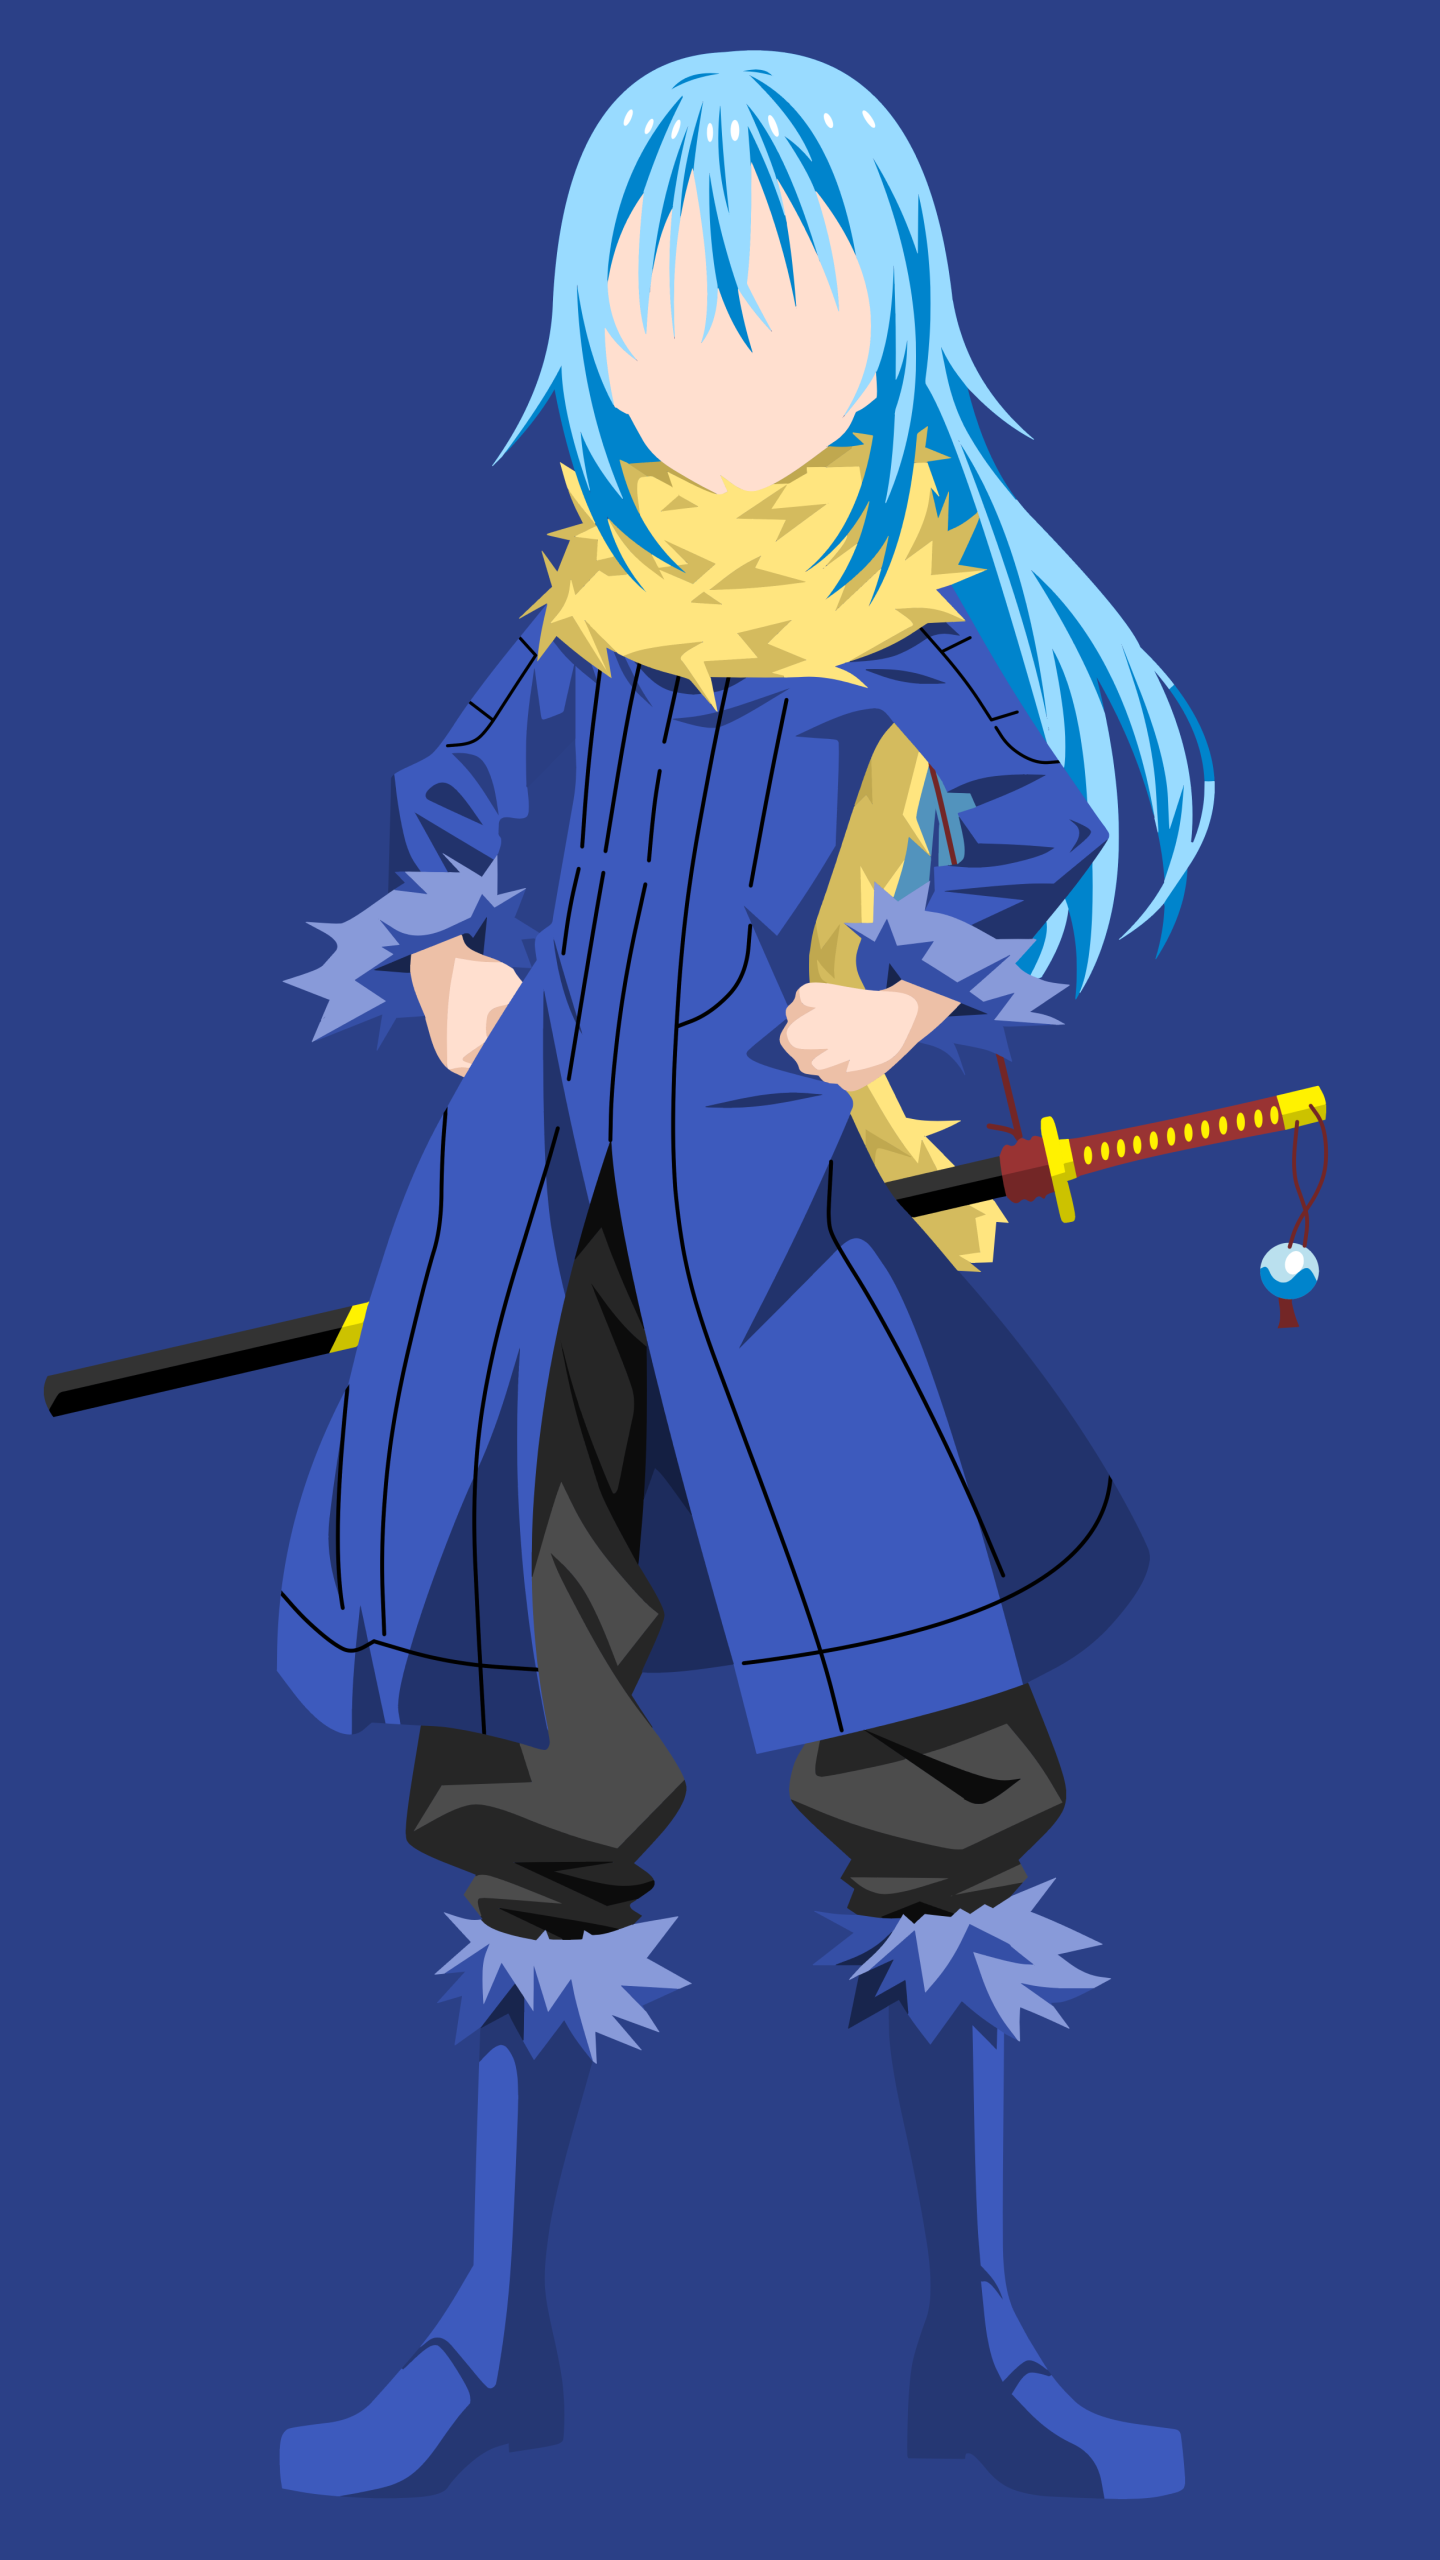 Anime That Time I Got Reincarnated As A Slime 1440x2560